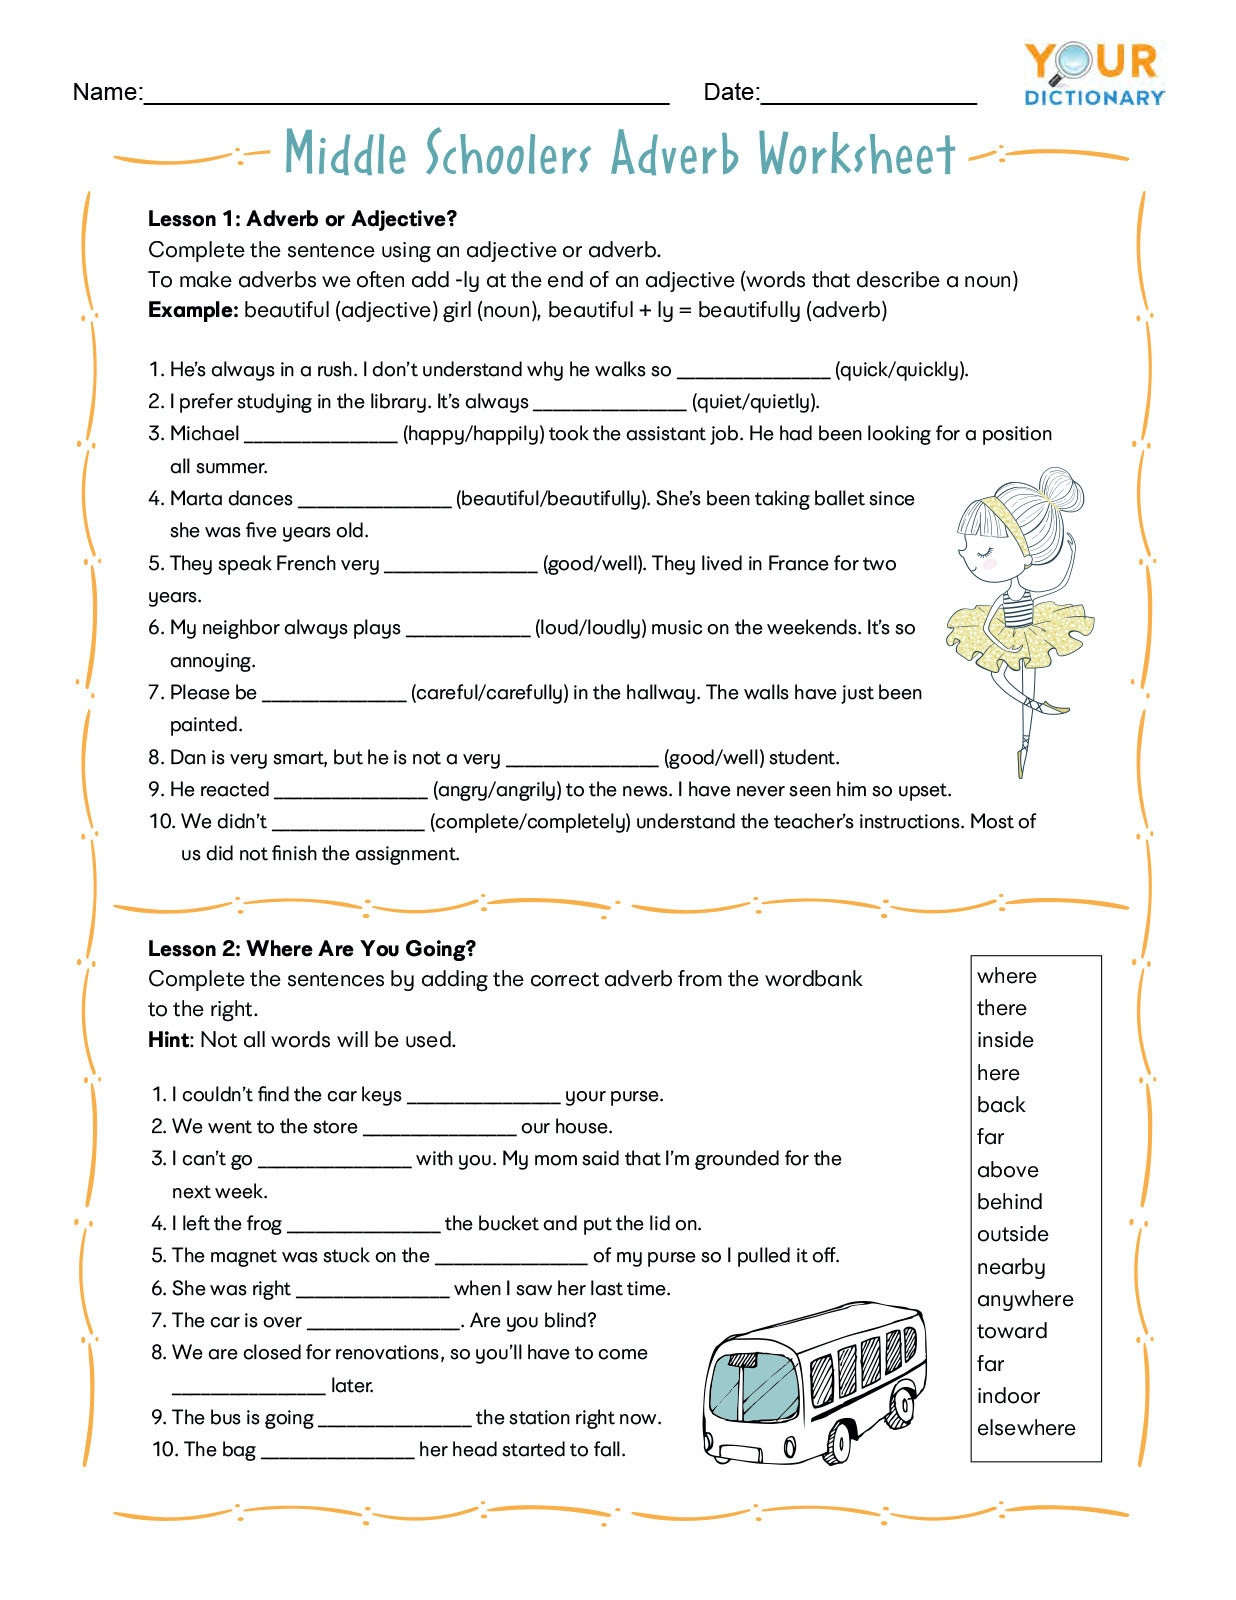 Test Taking Skills Worksheets Download Adverb Worksheets for Elementary and Middle School